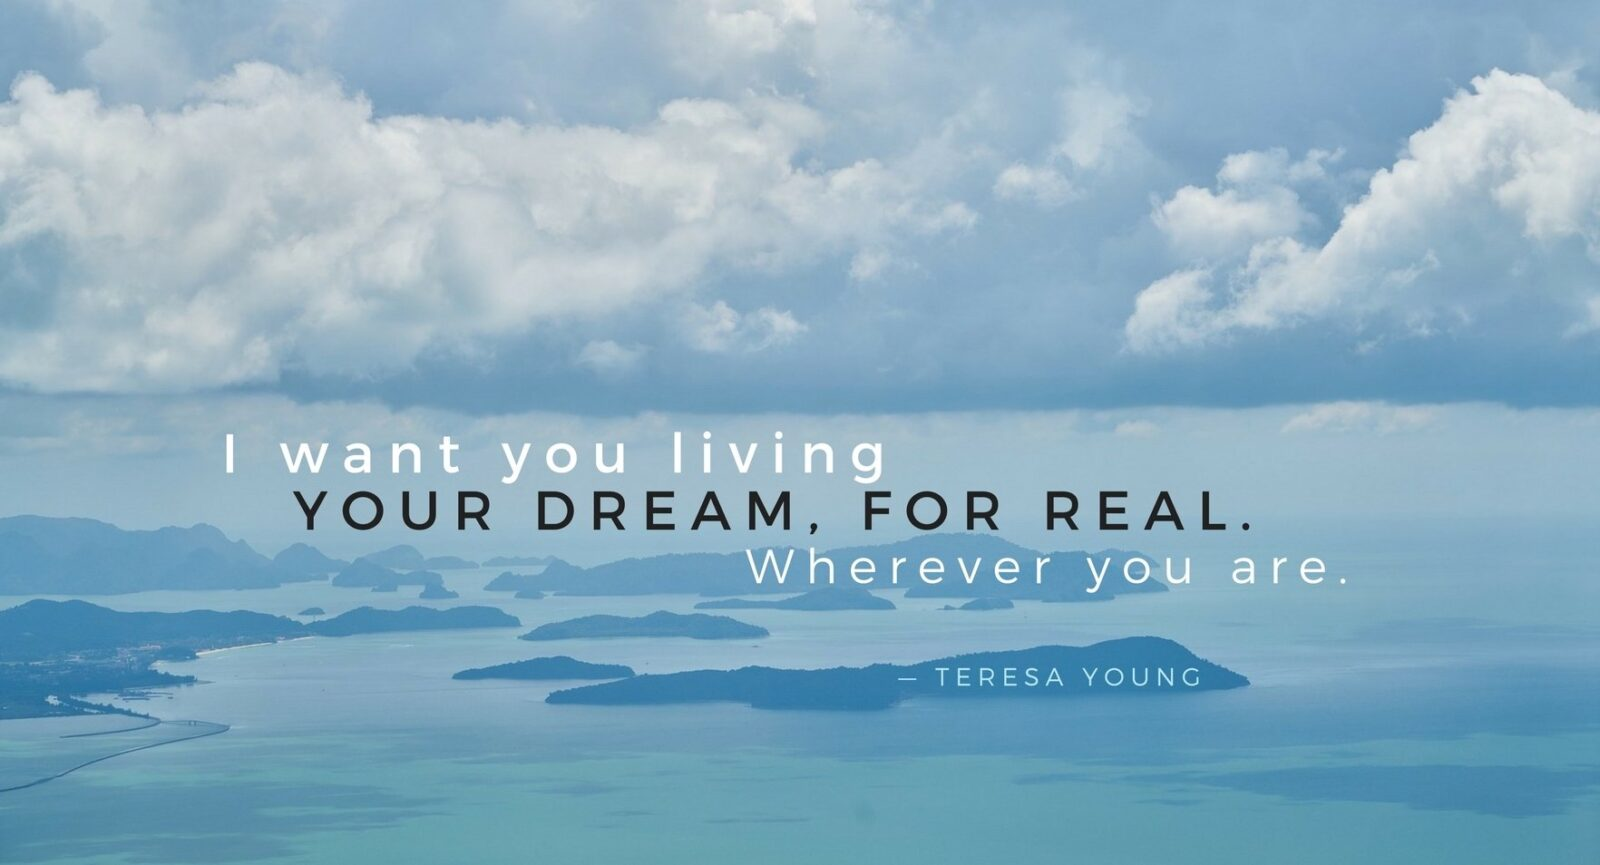 Life Coaching With Teresa Young Live Your Dream